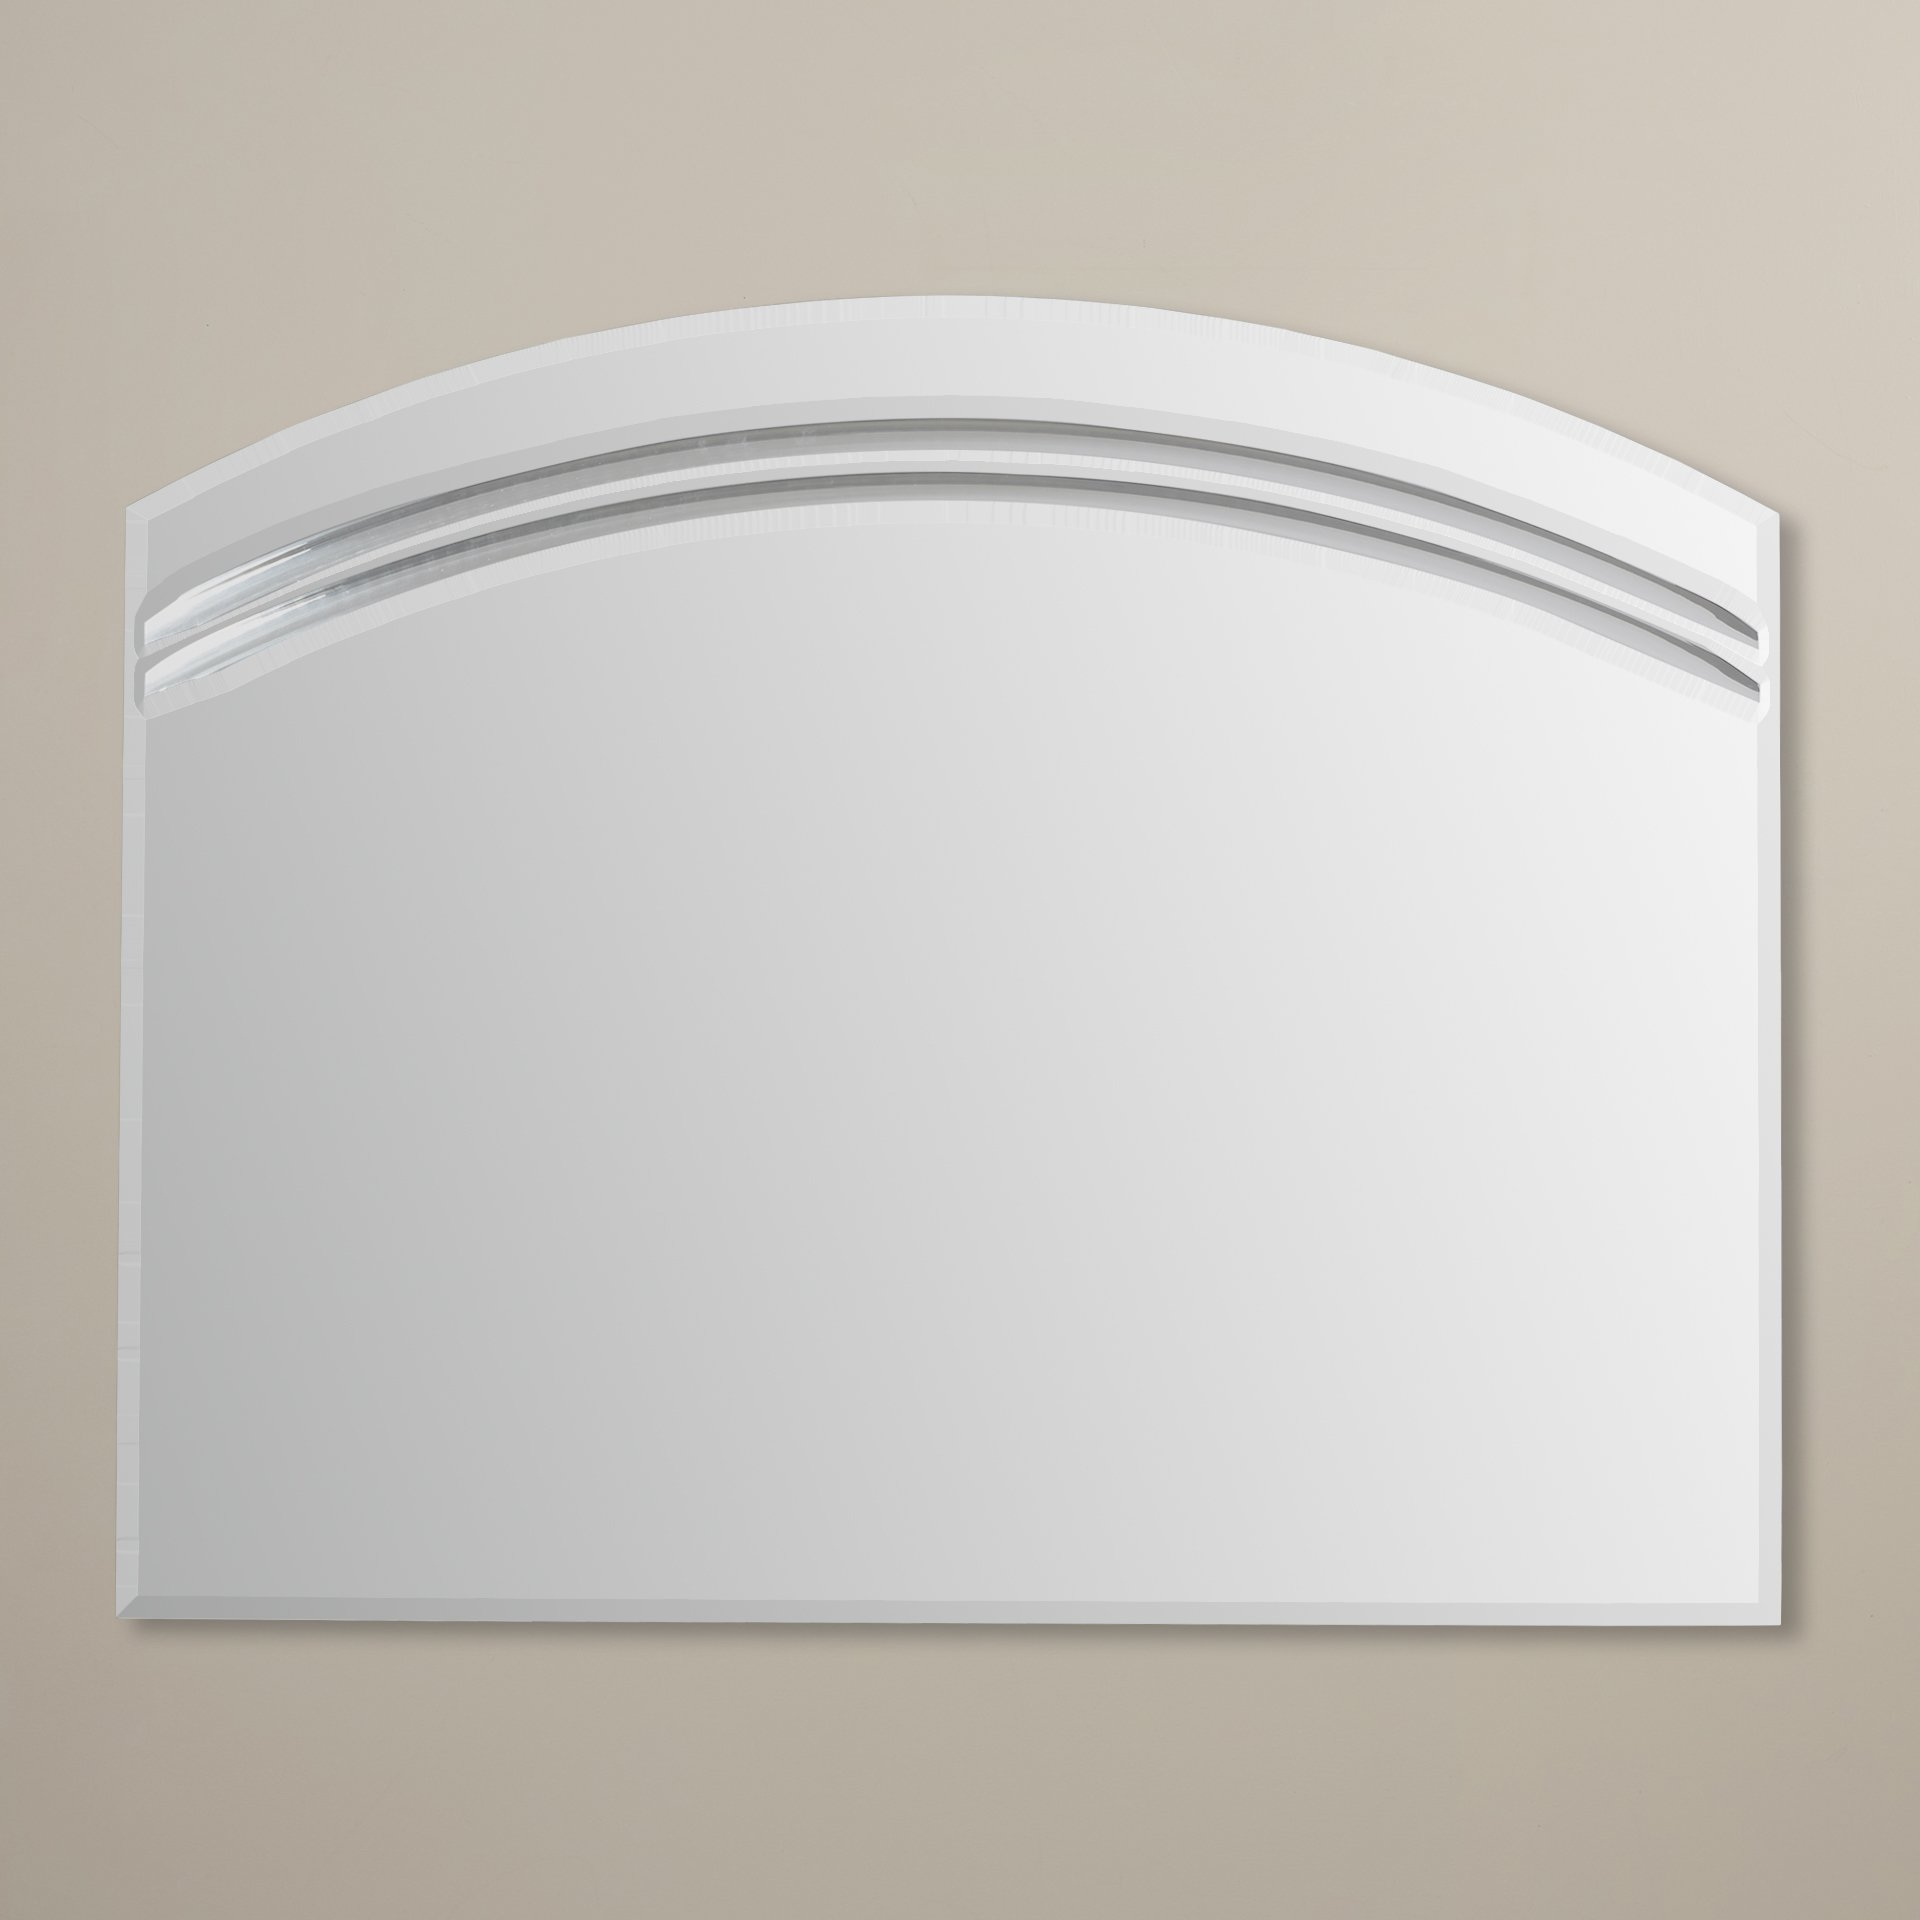 Wade Logan Large Frameless Wall Mirror Reviews Wayfair Regarding Large Frameless Mirror (Image 14 of 15)